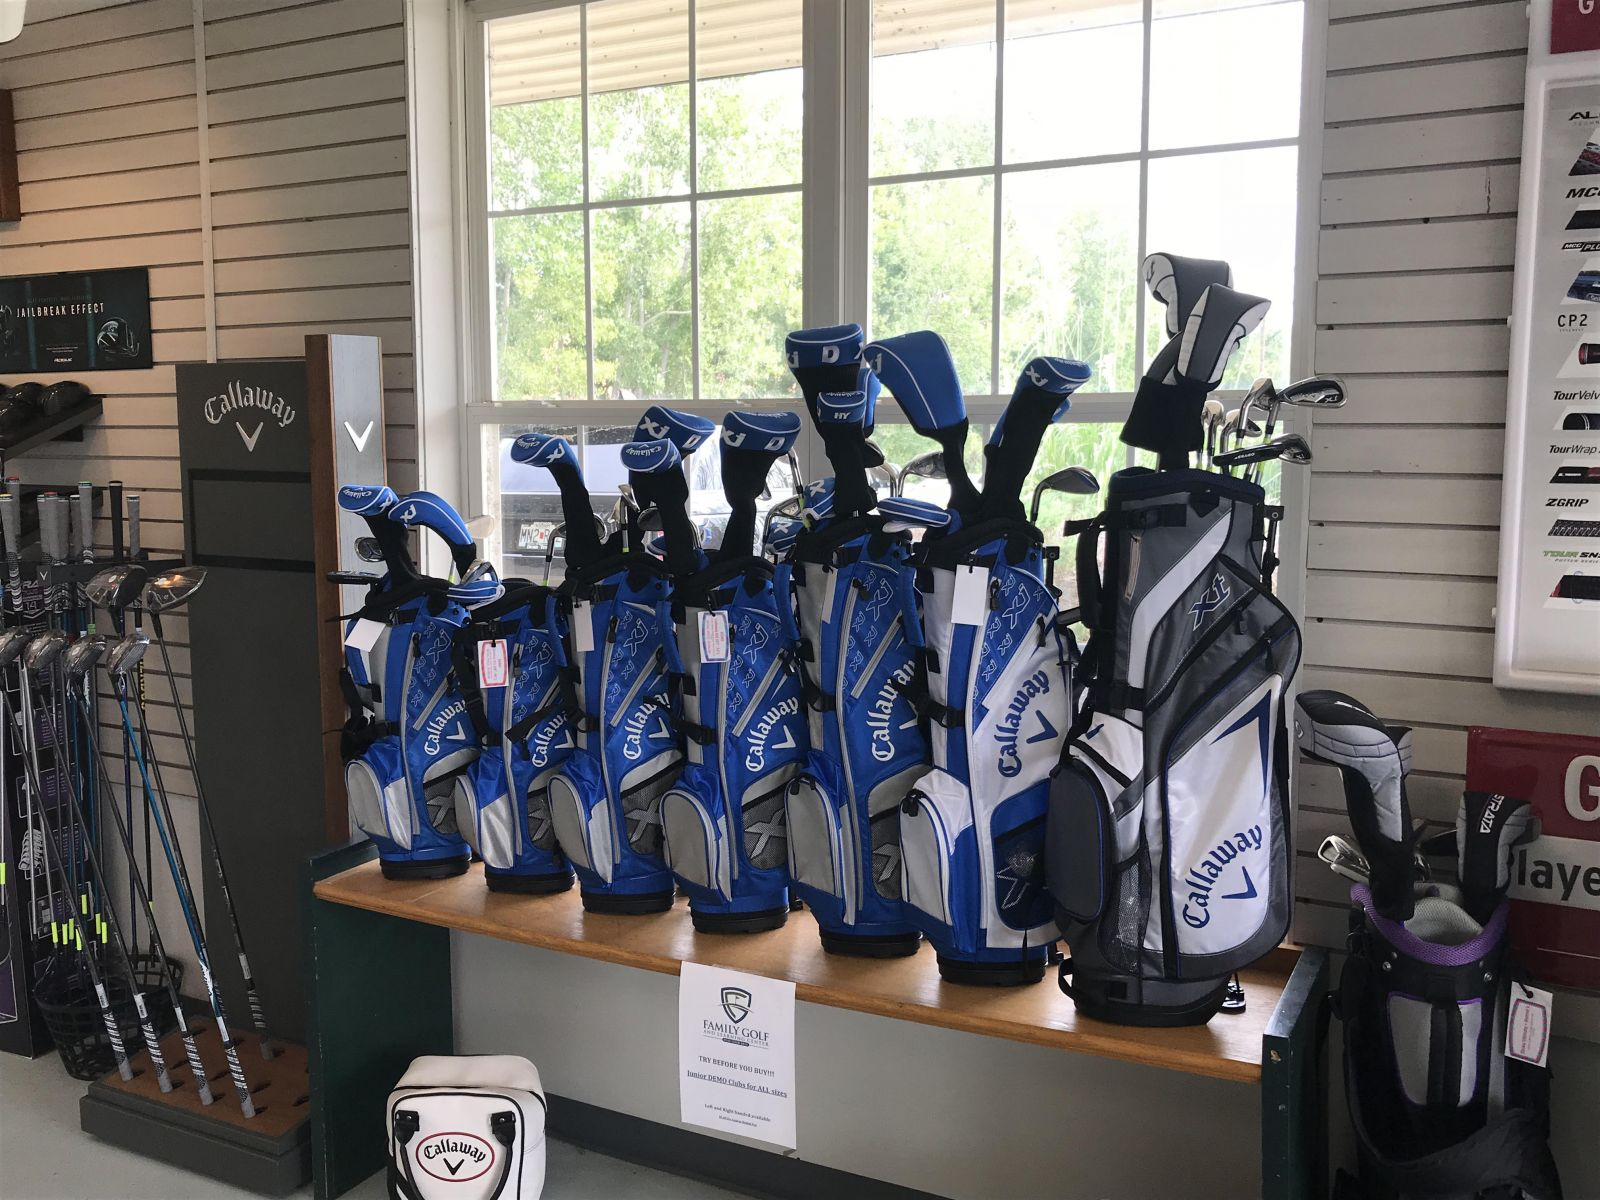 Demo Clubs are displayed at the pro shop at Family Golf & Learning Center in St. Louis